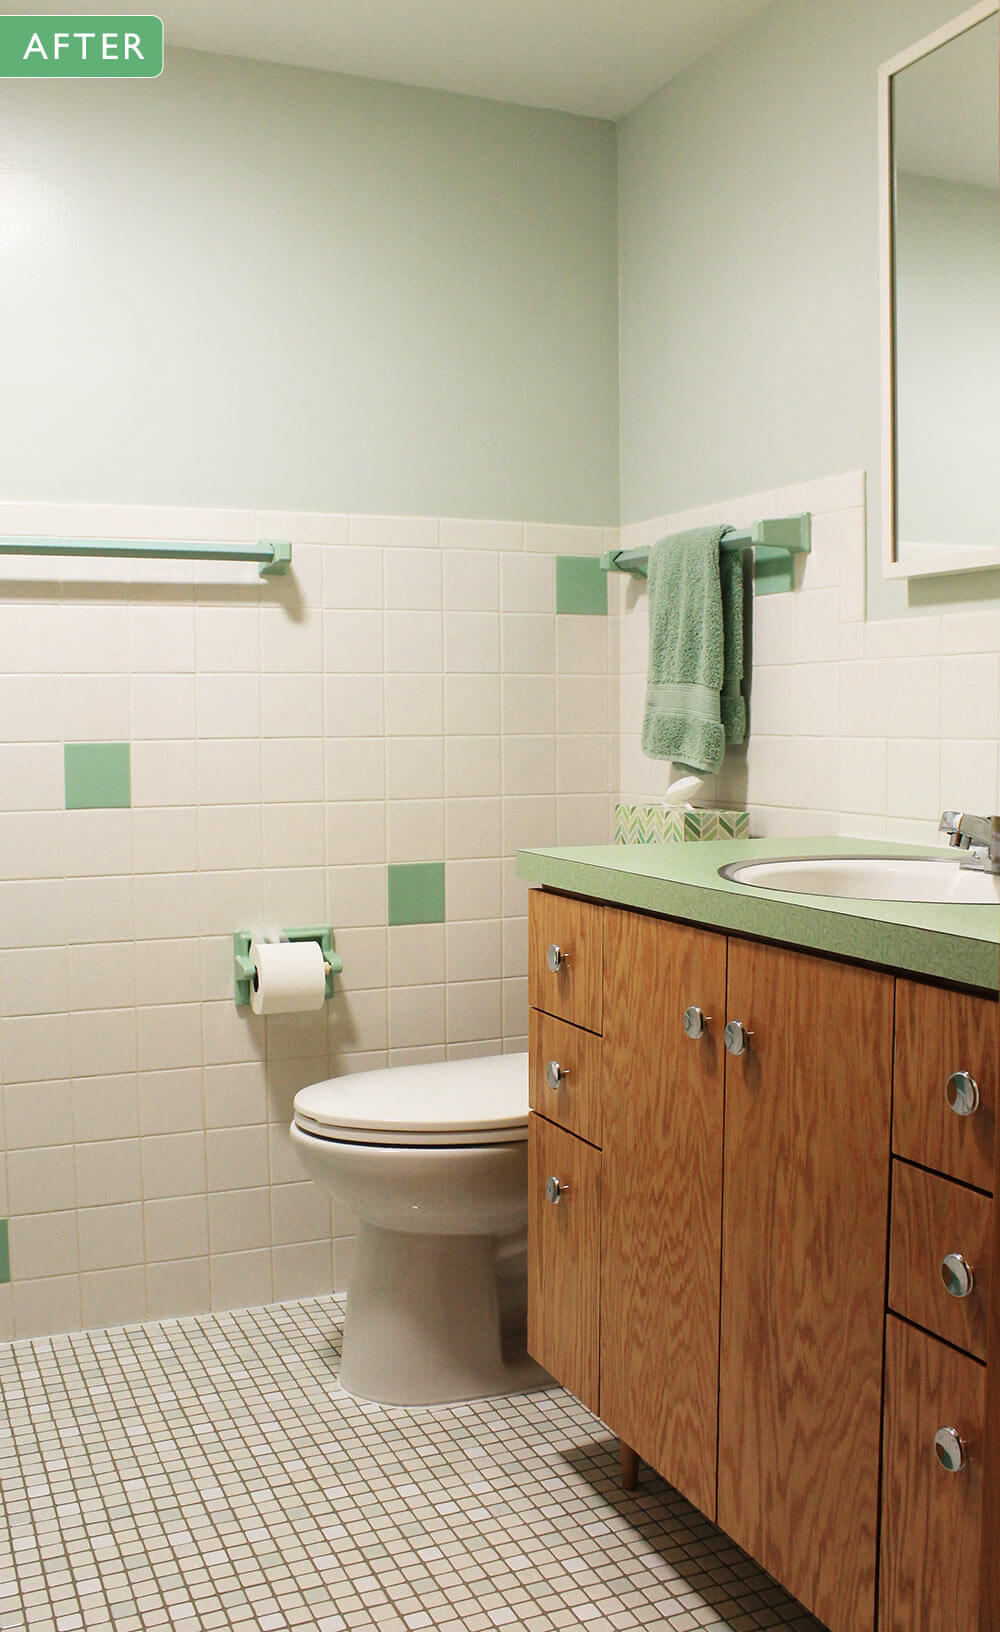 Cute retro green bathroom